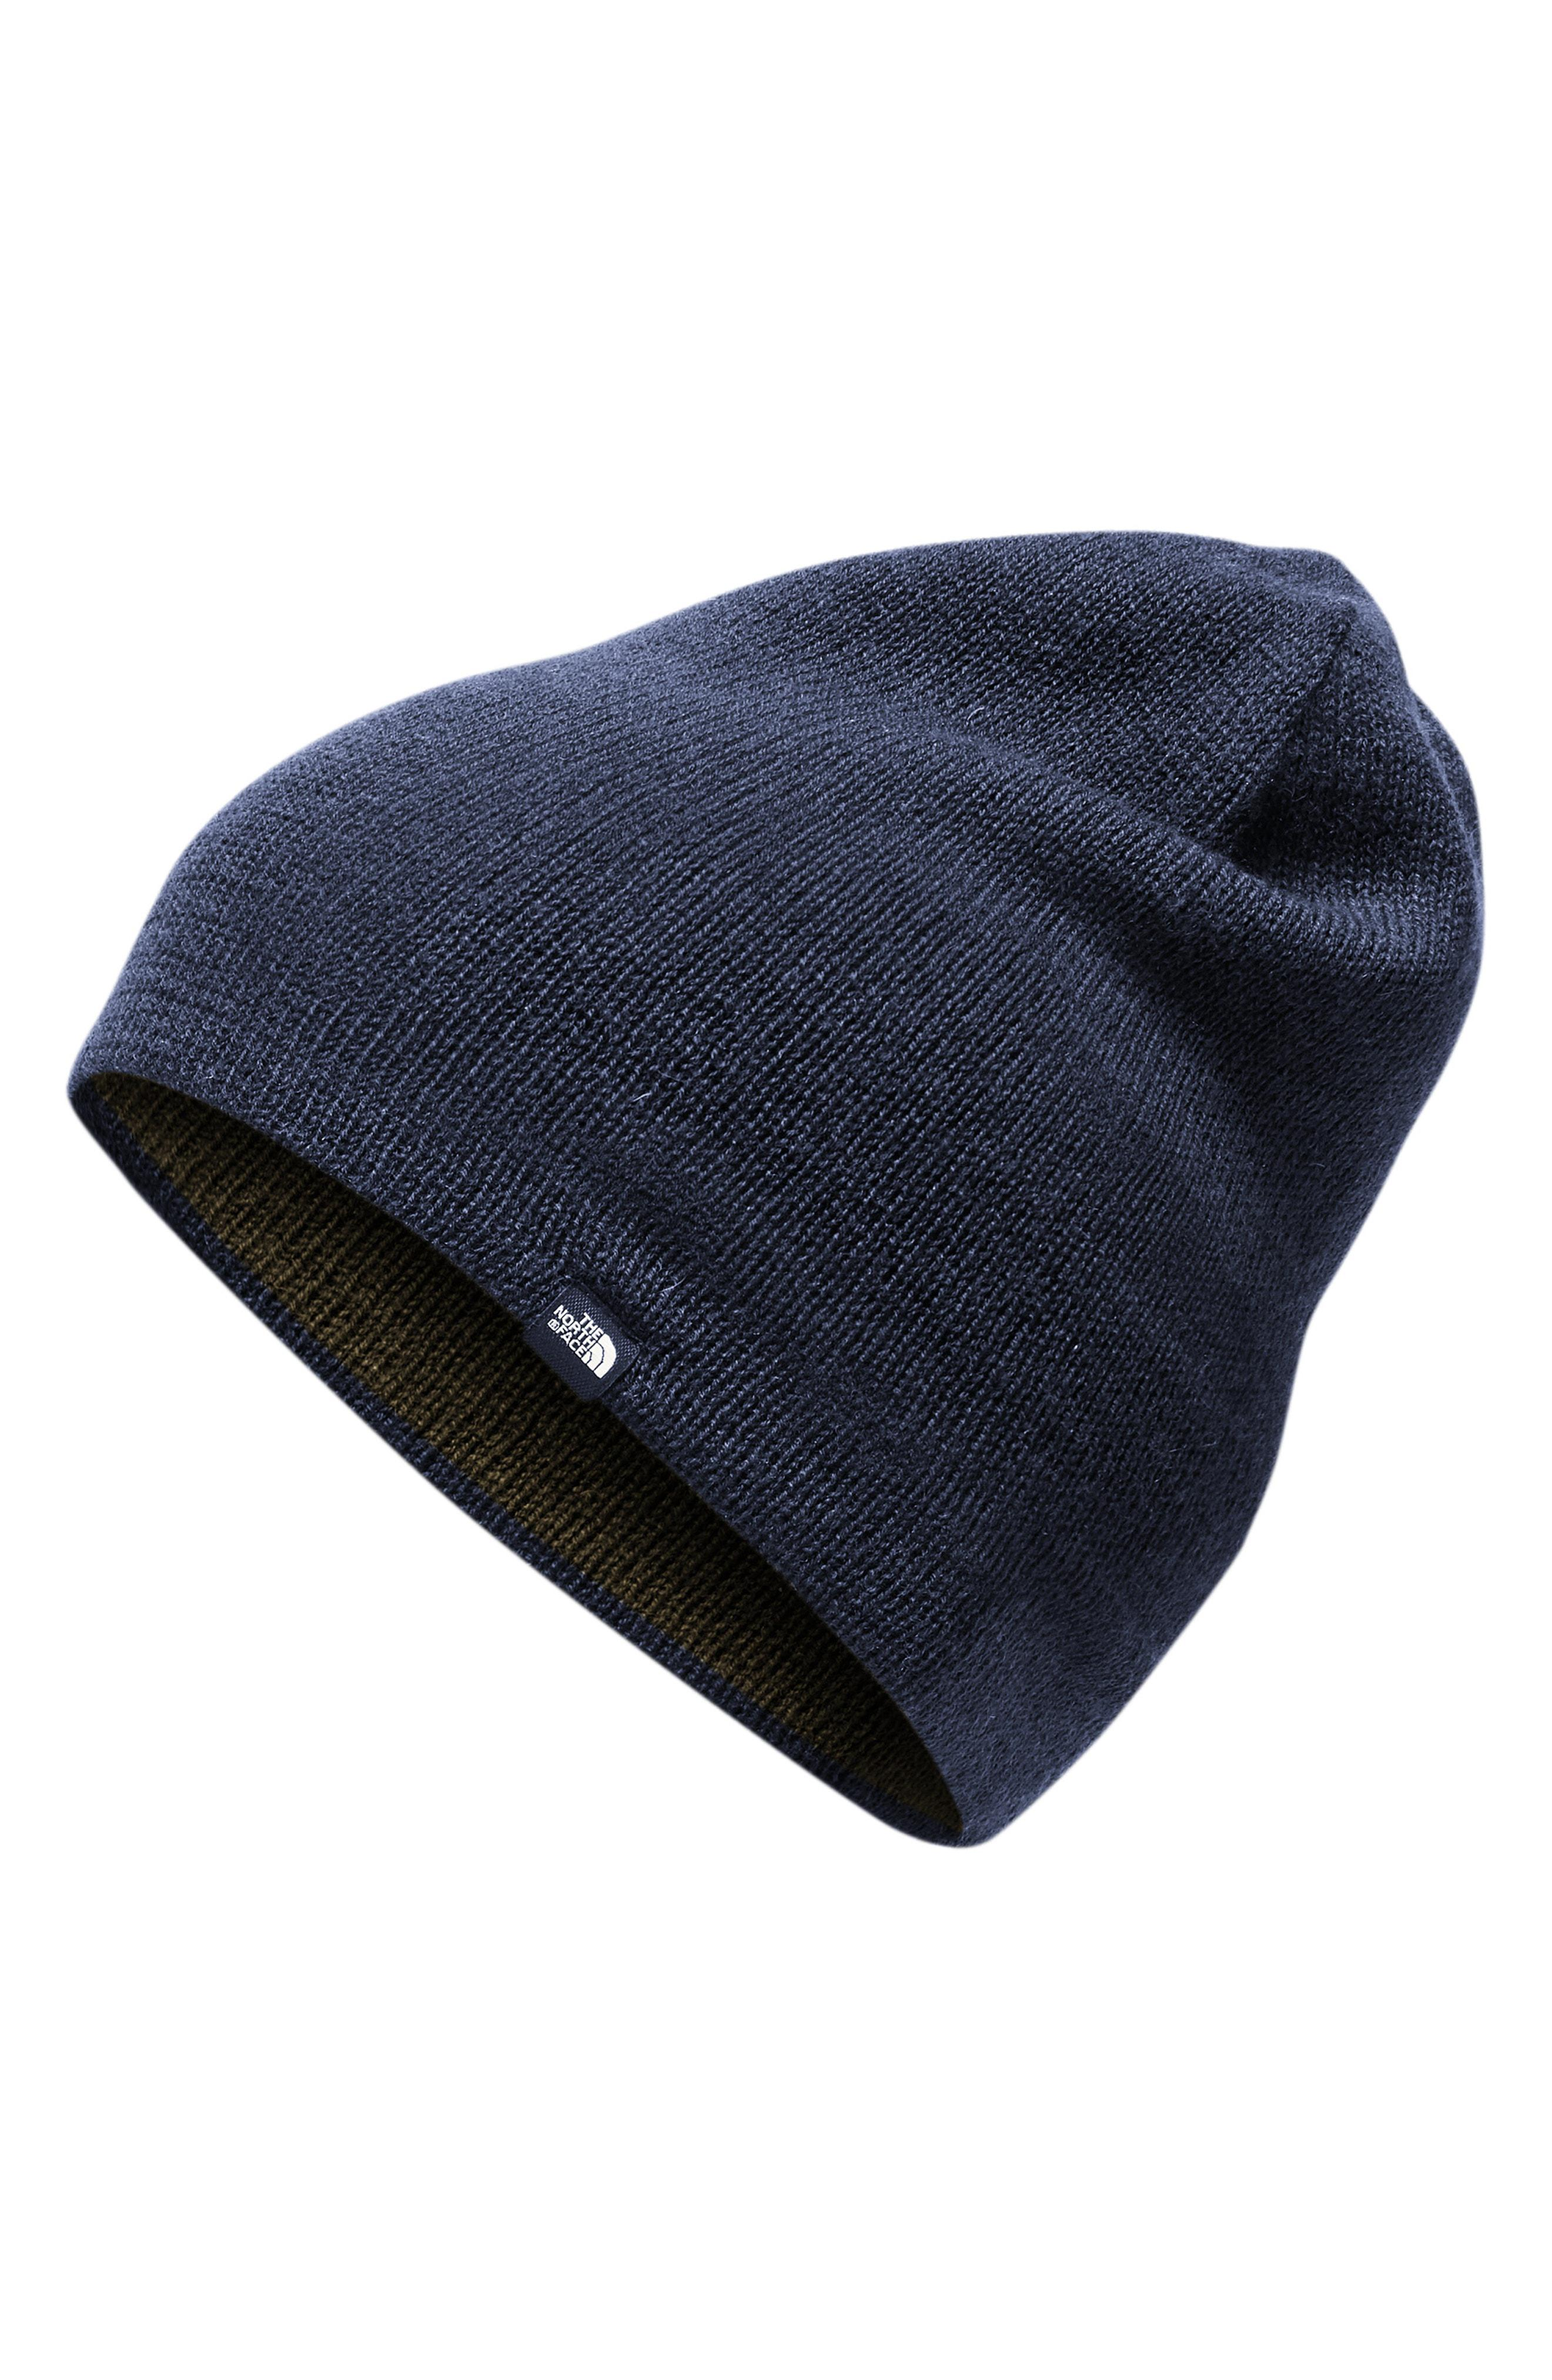 1760a36ffa6 Lyst - The North Face Reversible Merino Wool Beanie in Blue for Men